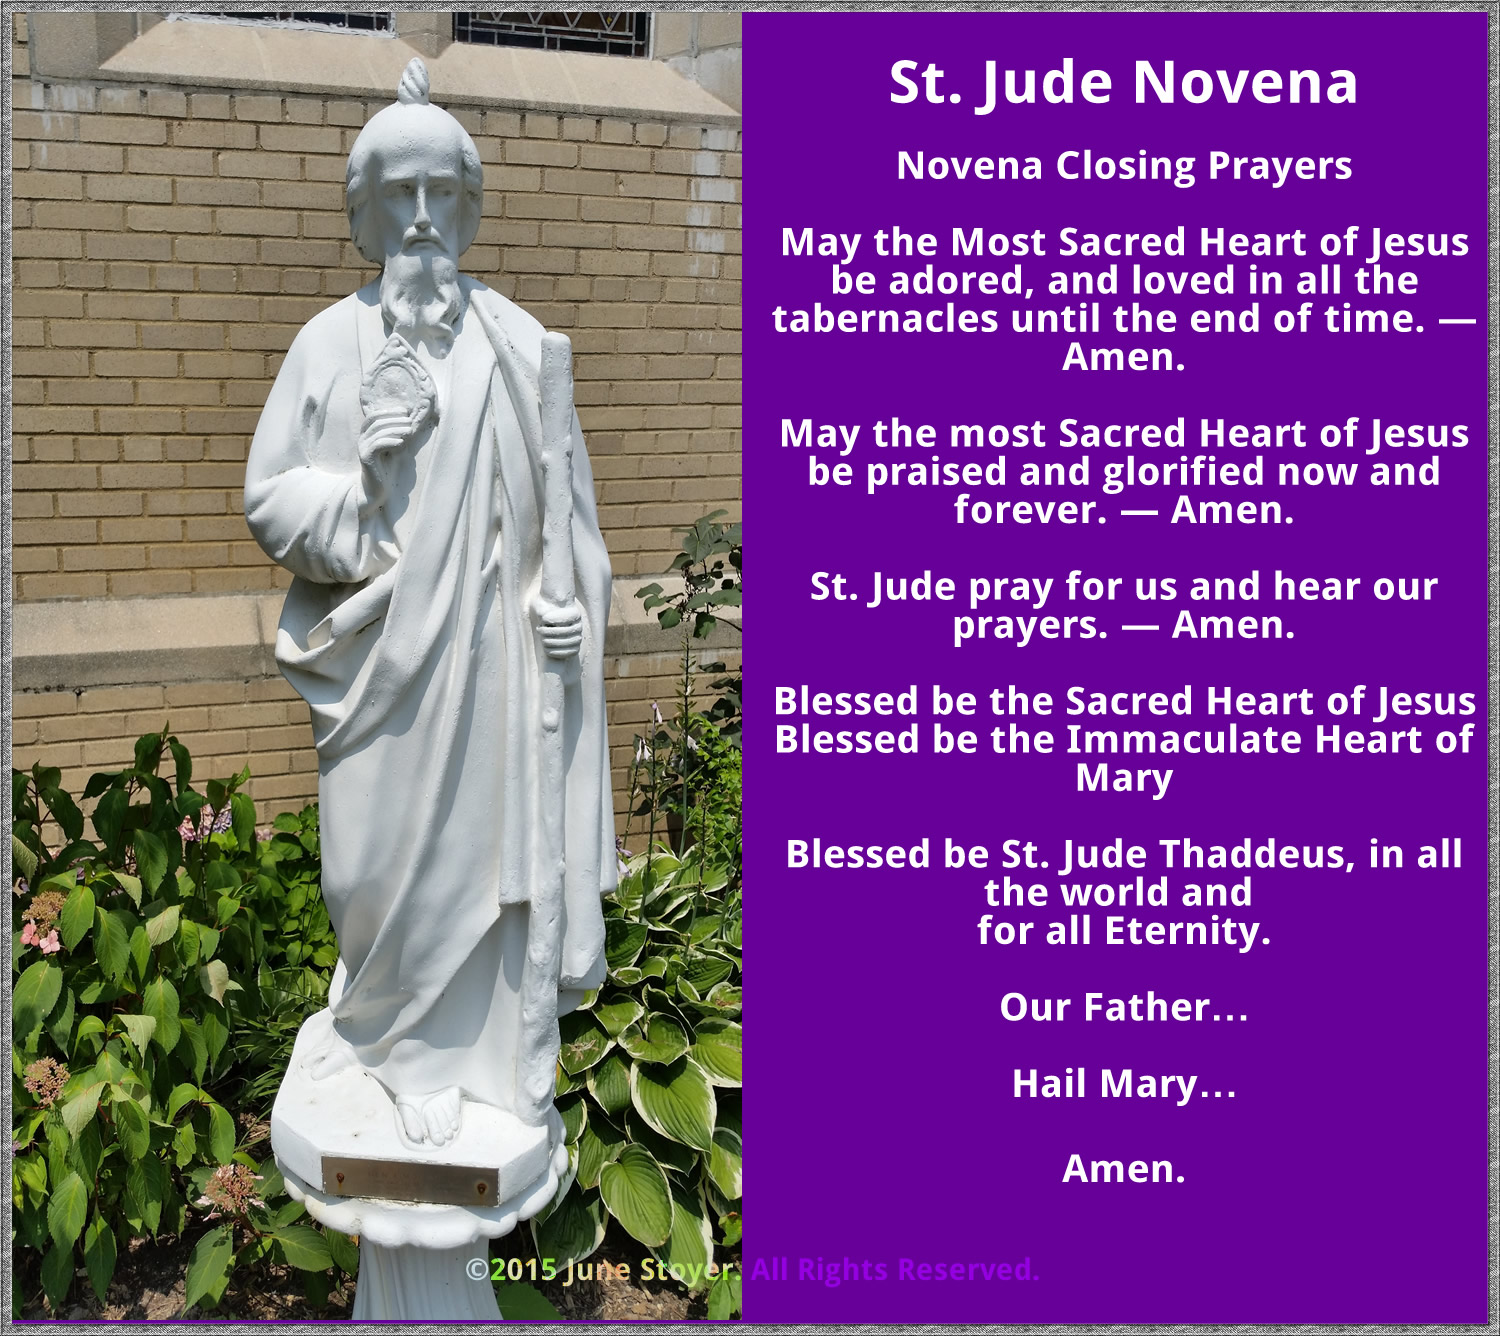 St jude novena closing prayers view full size thecheapjerseys Gallery